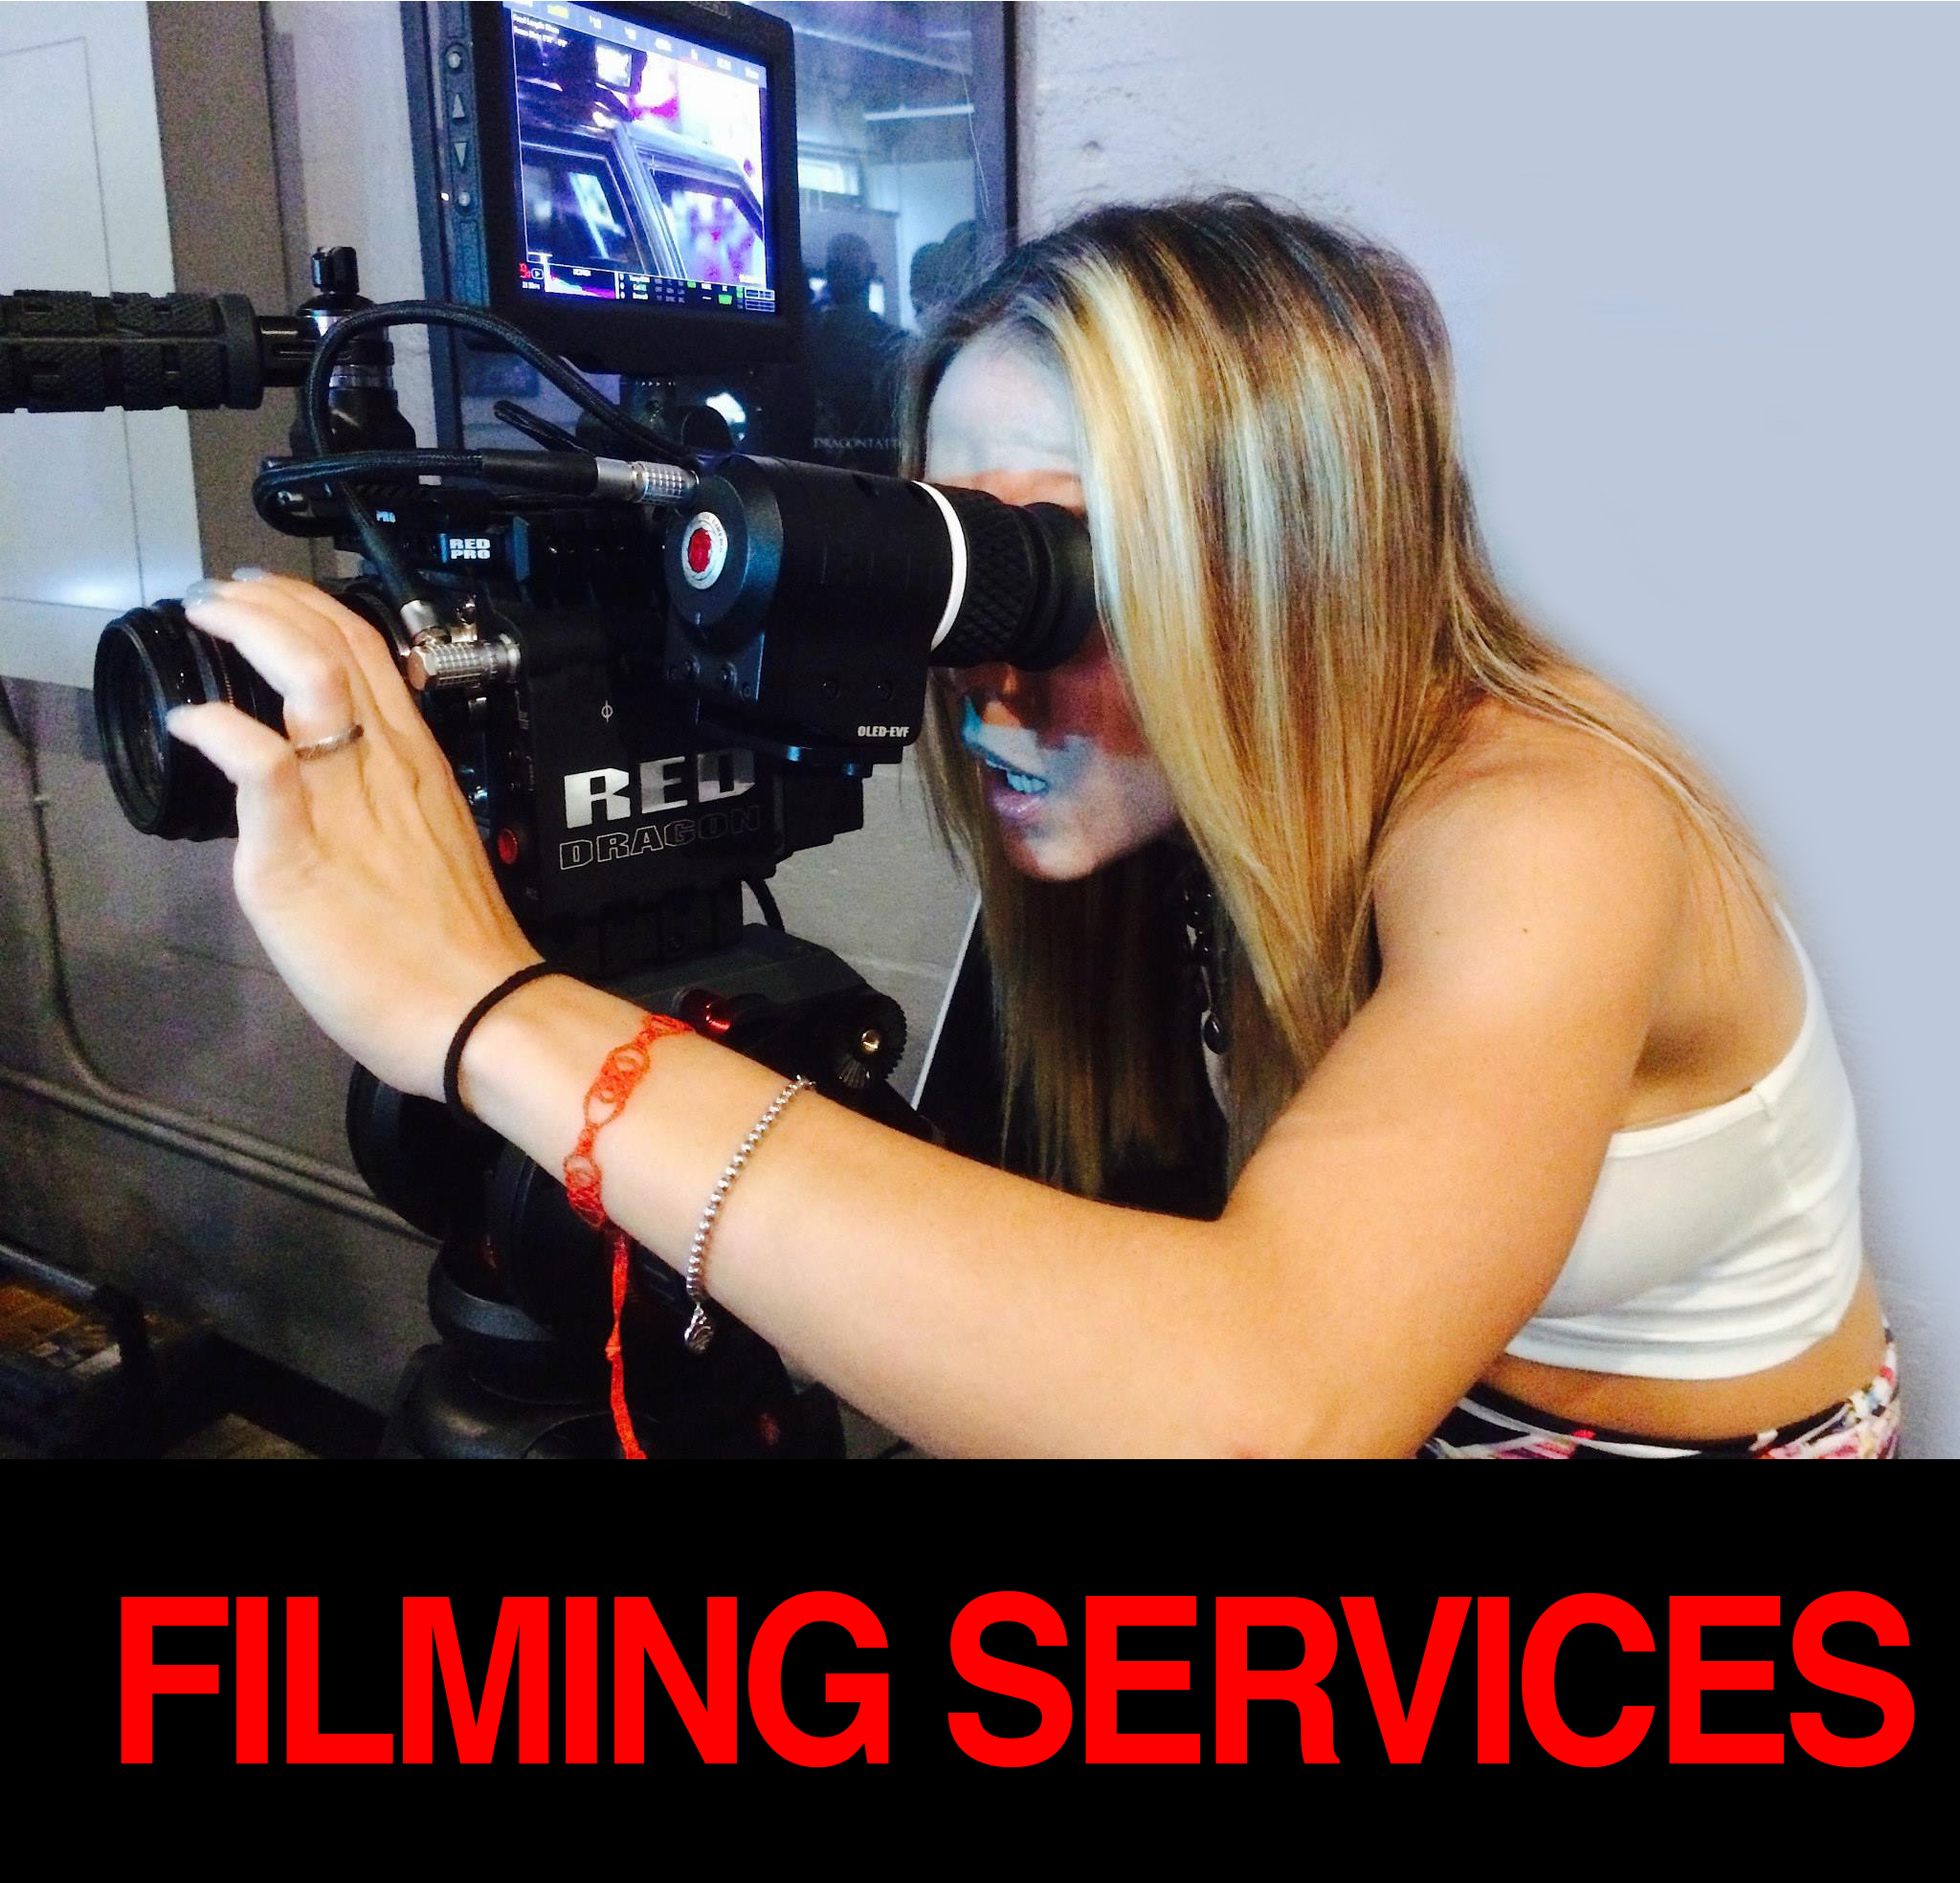 FILMING SERVICES